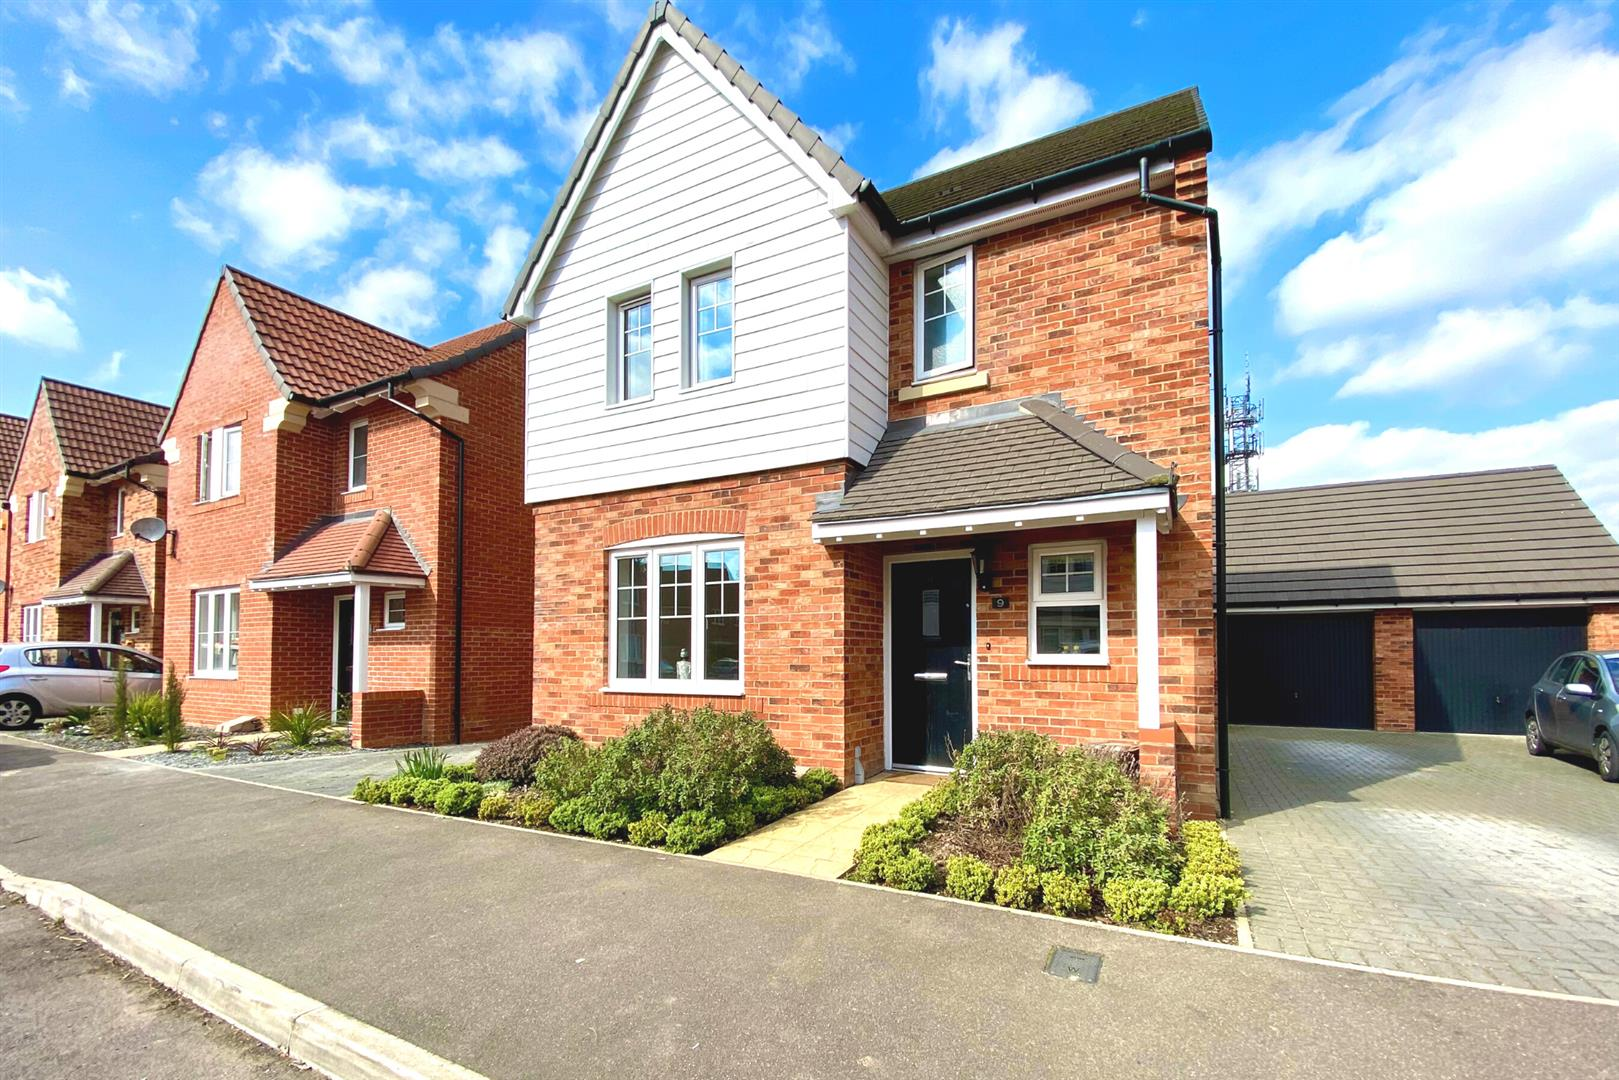 3 bed detached for sale in Woodley, RG5